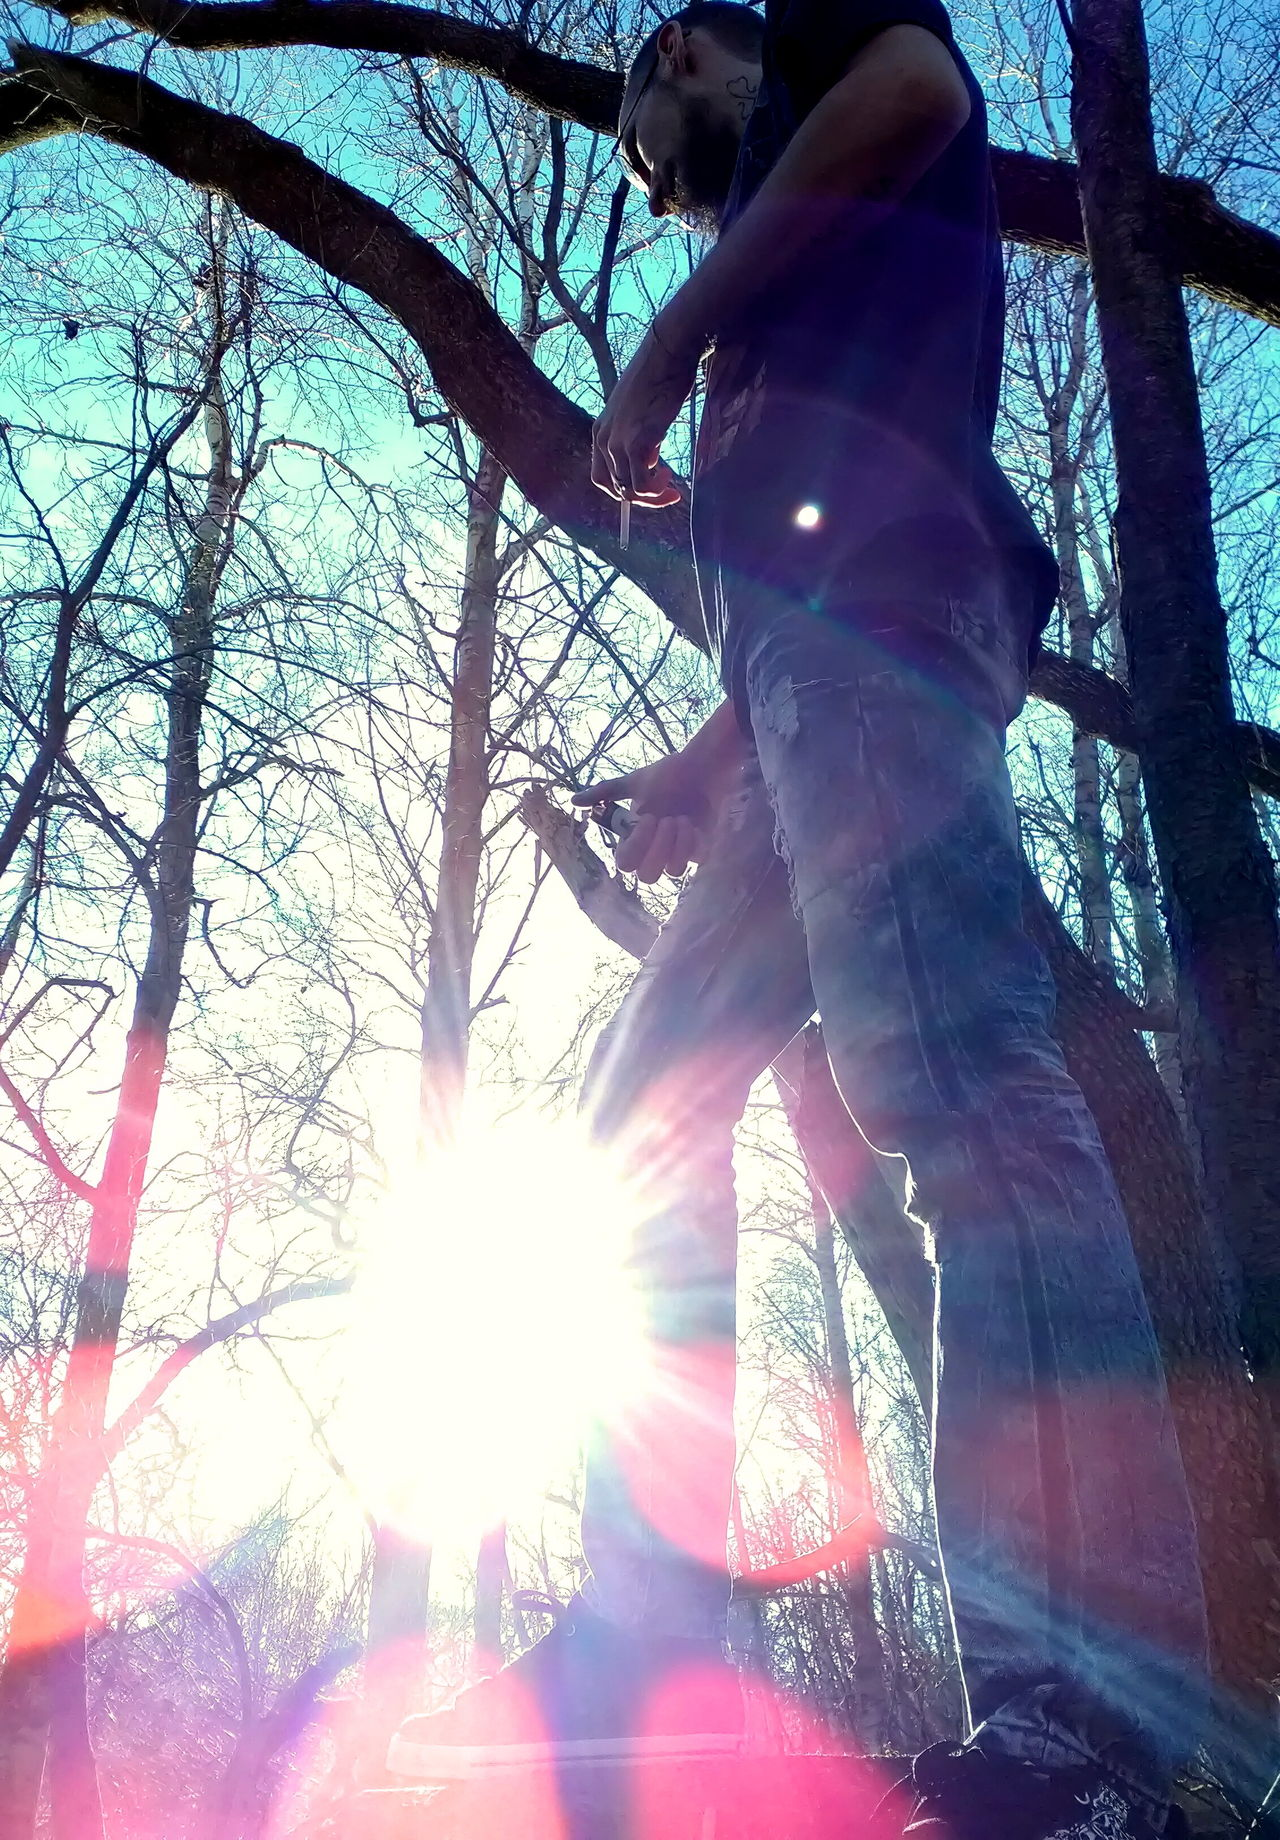 Lens Flare One Person Tree Low Angle View Outdoors Sky Close-up Day Real People, Real Lives My Photography. ❤ Wilderness Area My Husband ❤ 2017 Michigan Outdoors Nature Photography Michigan Up North Nature_perfection My Point Of View Sunbeam Sun Burst Foundation Falling Scenics Weird Finds Old Fountains Broken Building